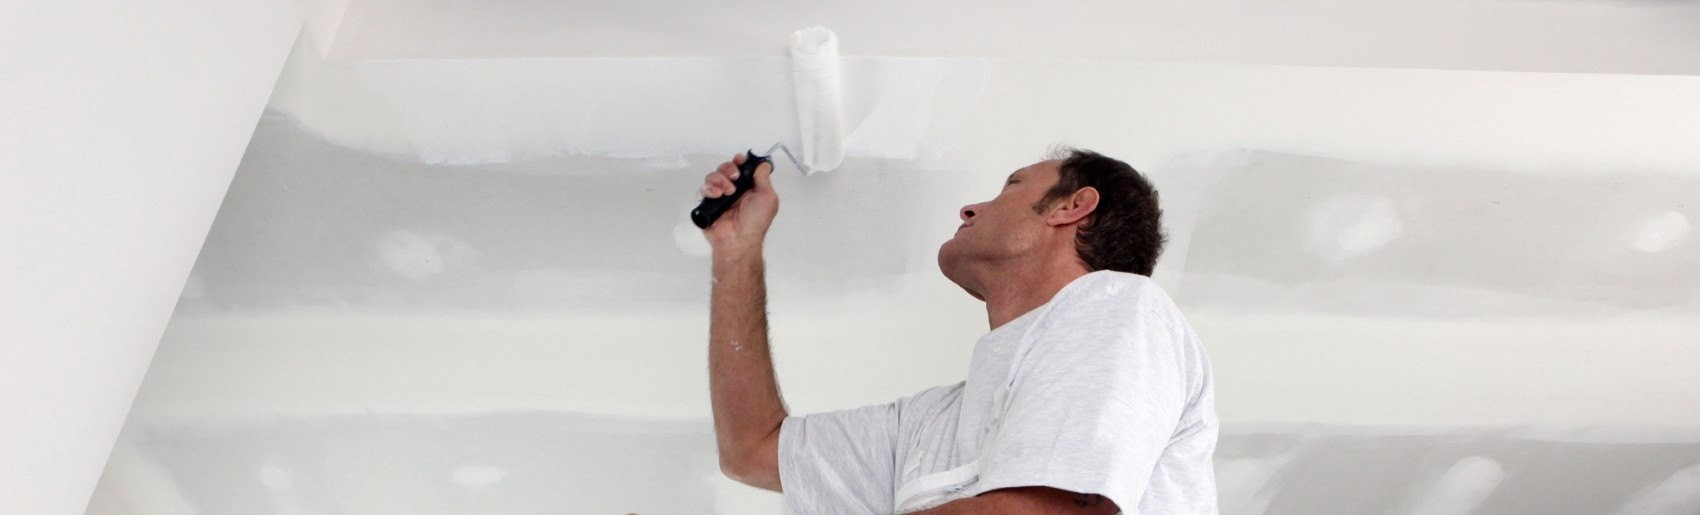 Drywall Repair Phoenix